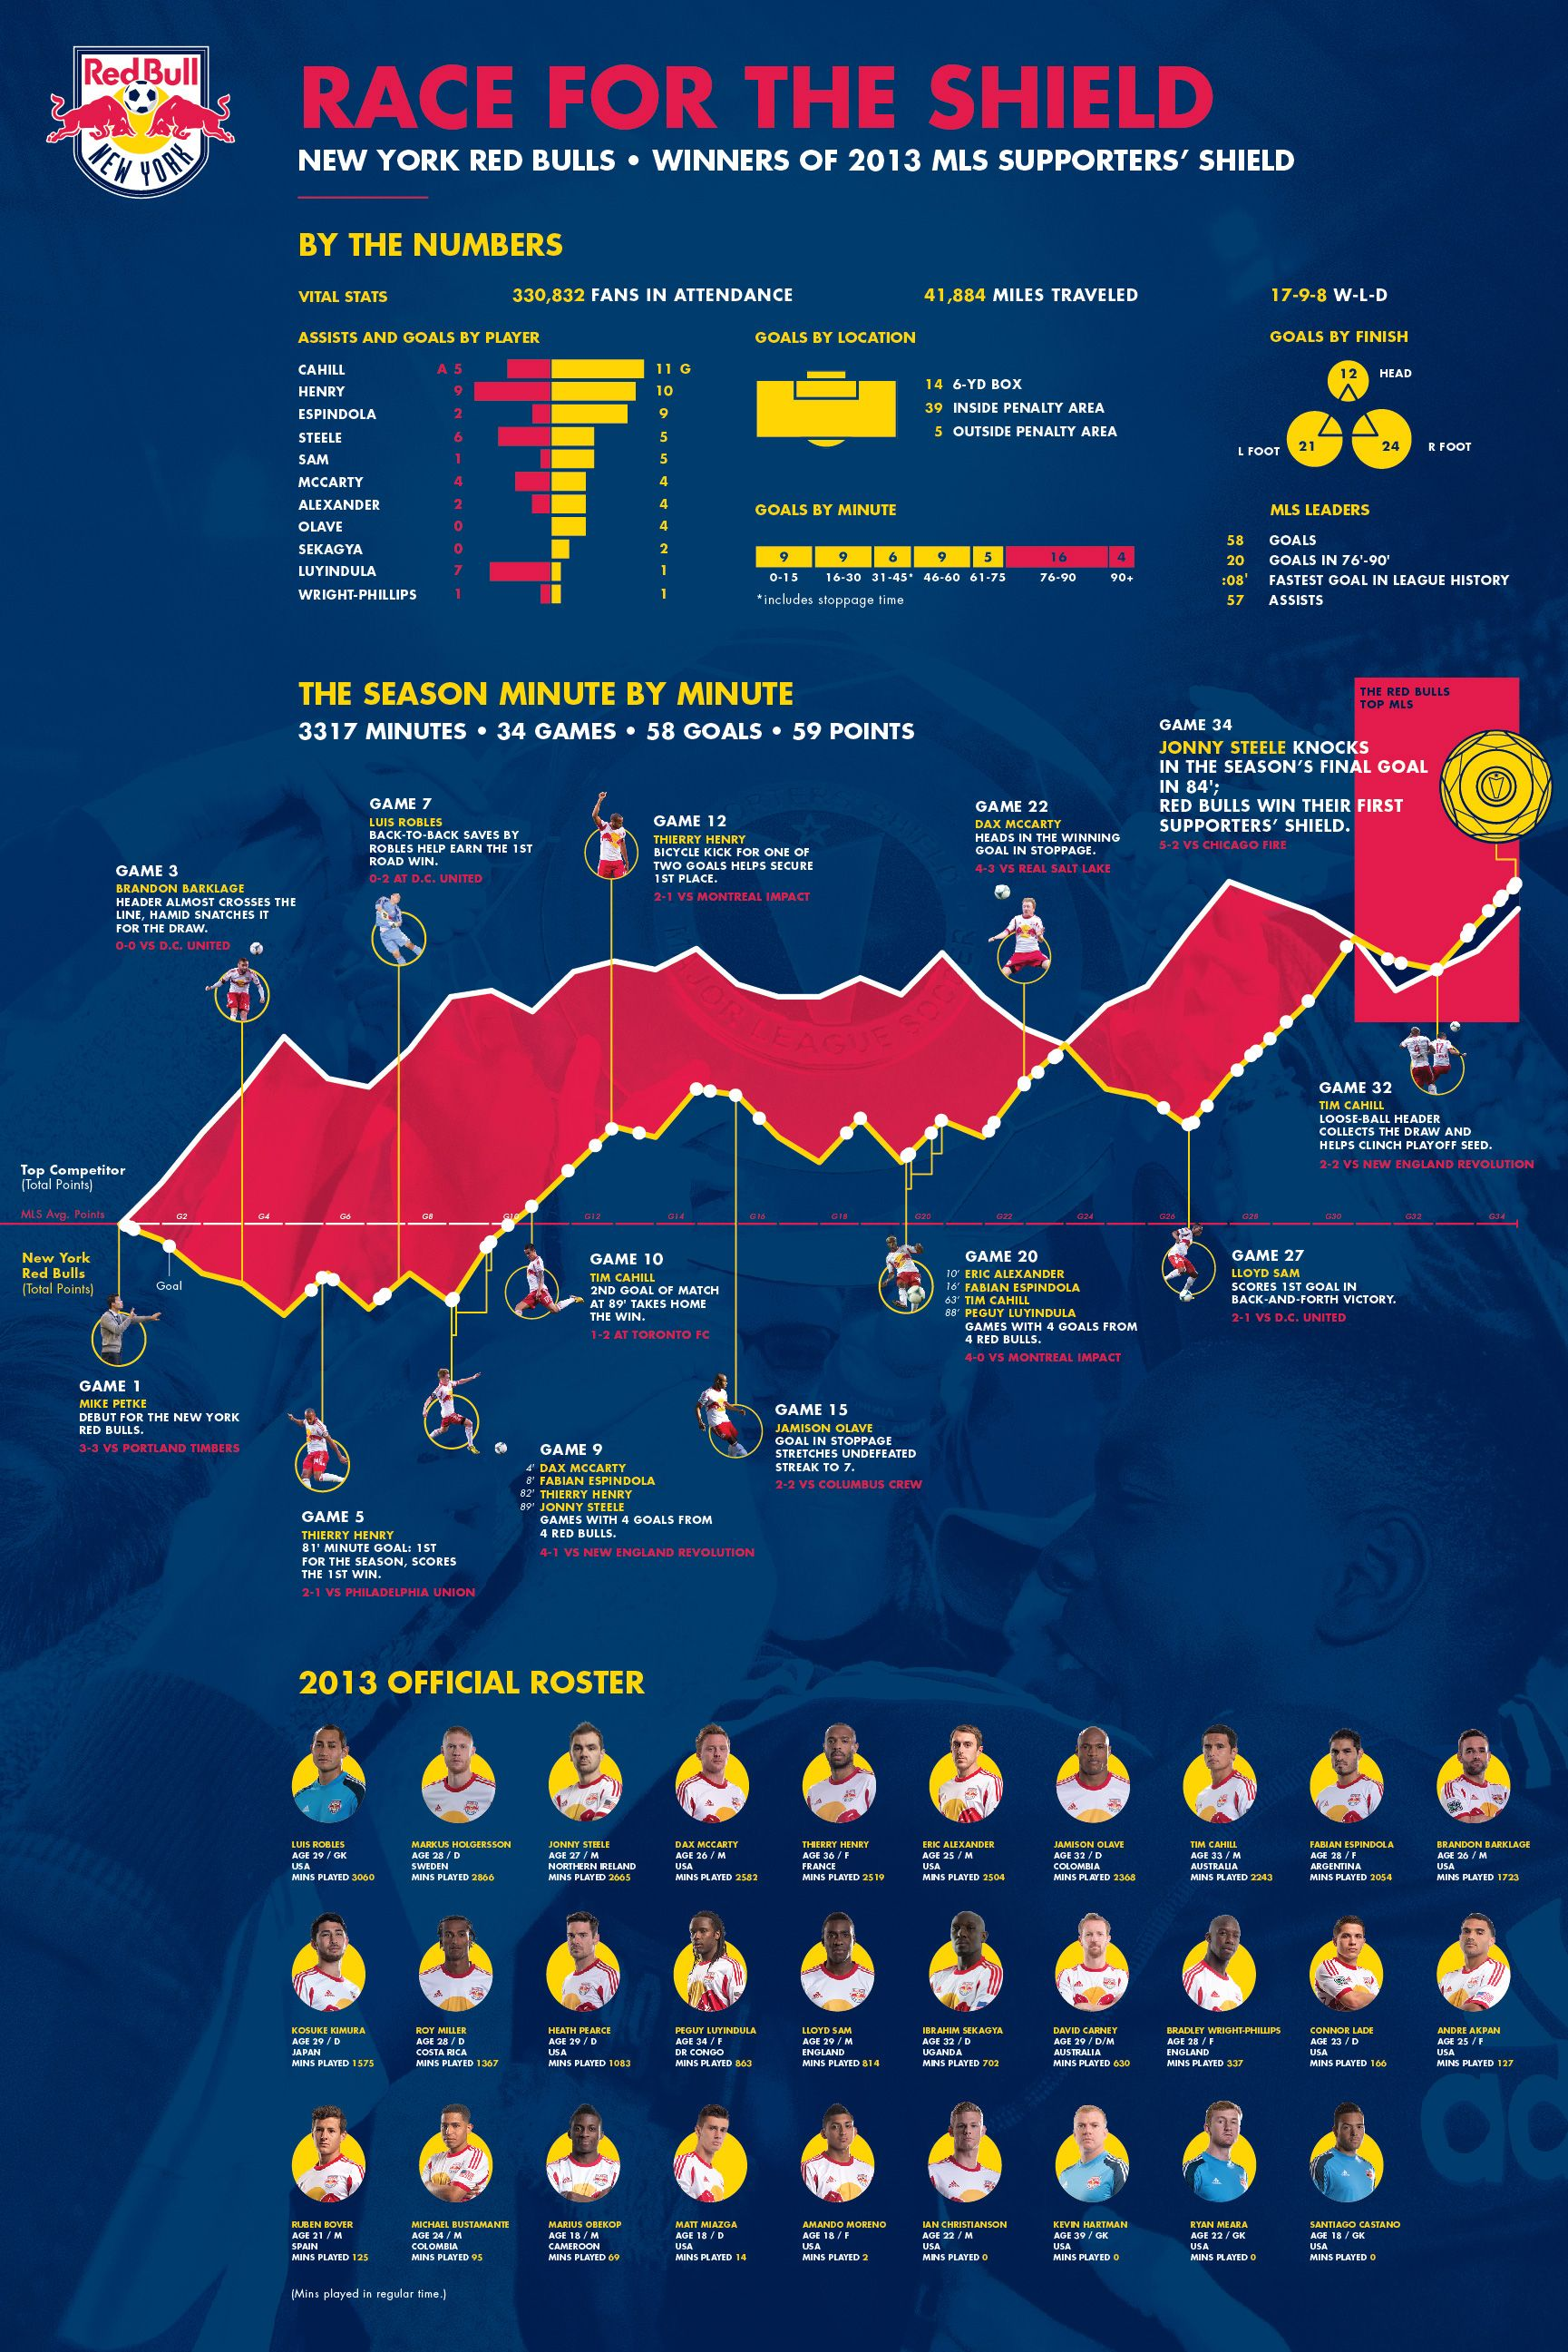 Red Bulls 2013 By the Numbers